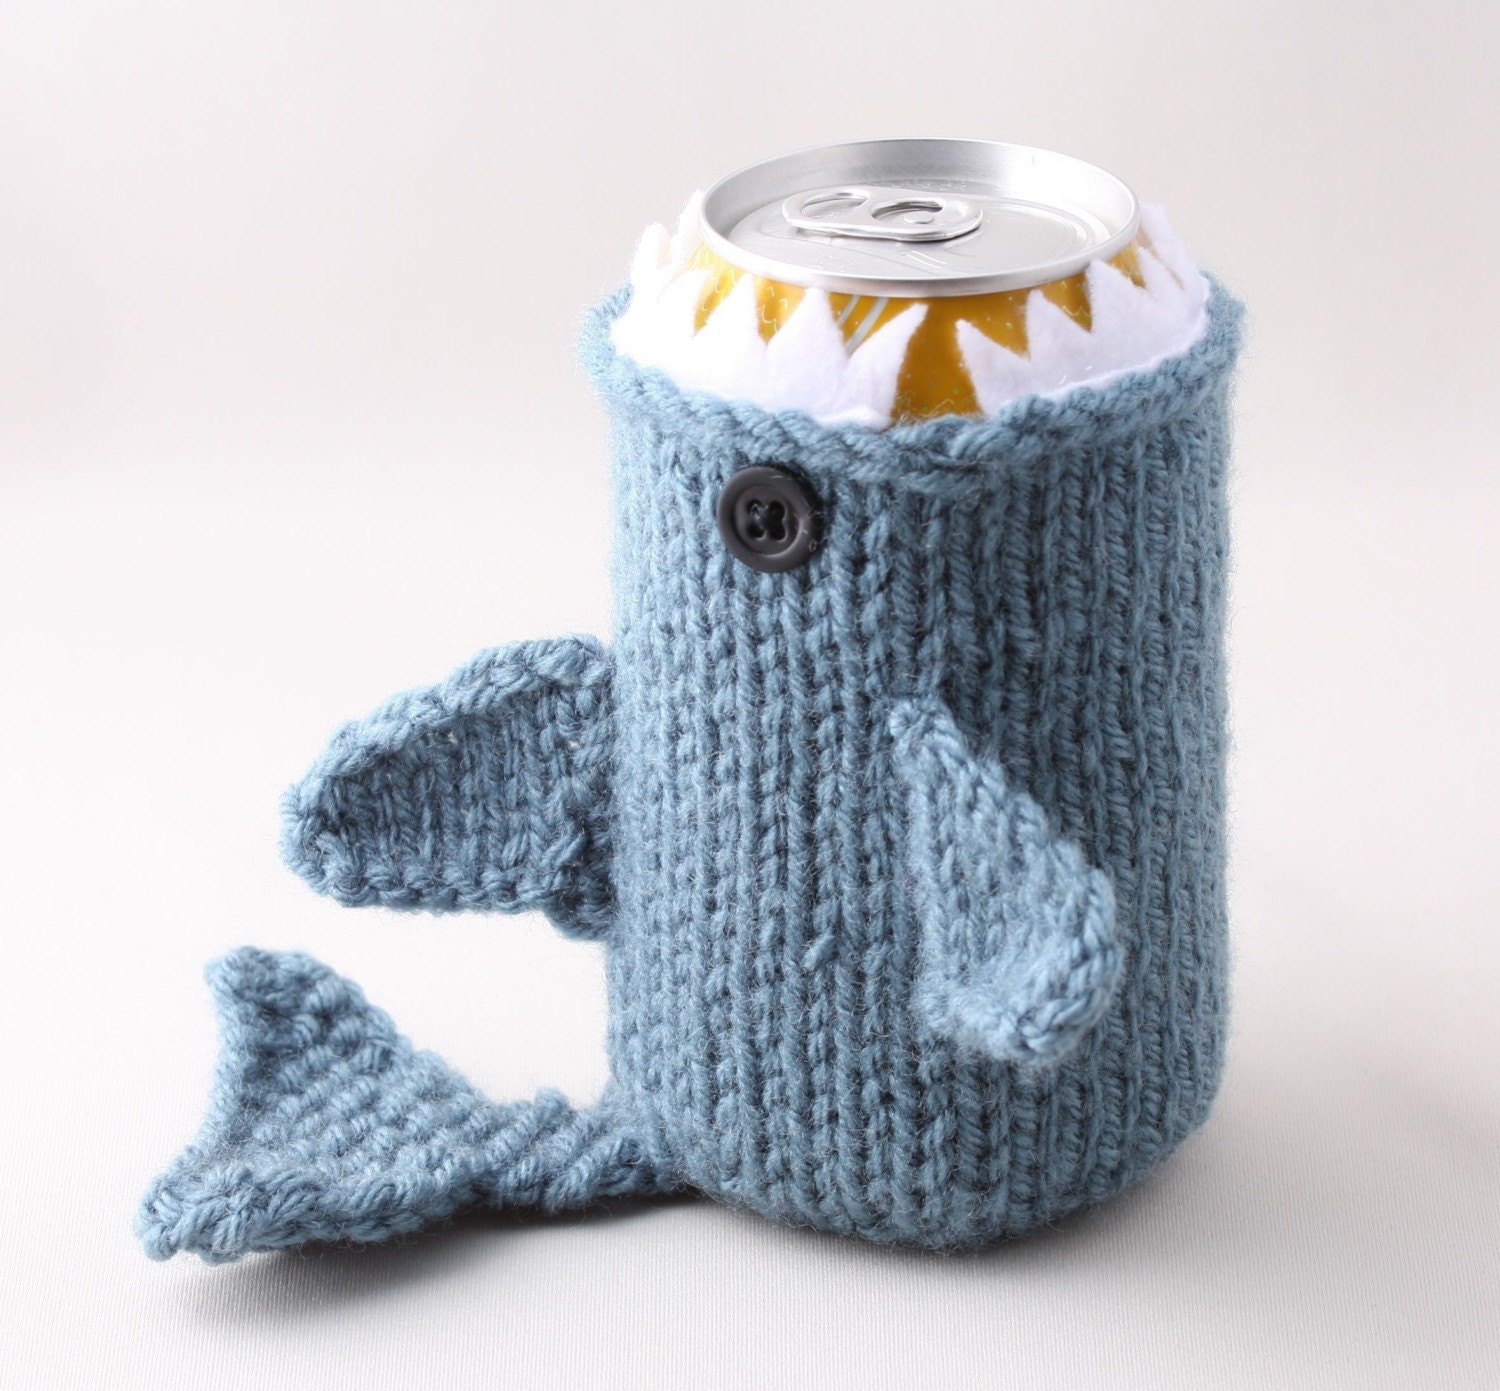 Monster Shark  - Dusty Blue- for your  Soda Can- was featured in ImbibeMagazine.com